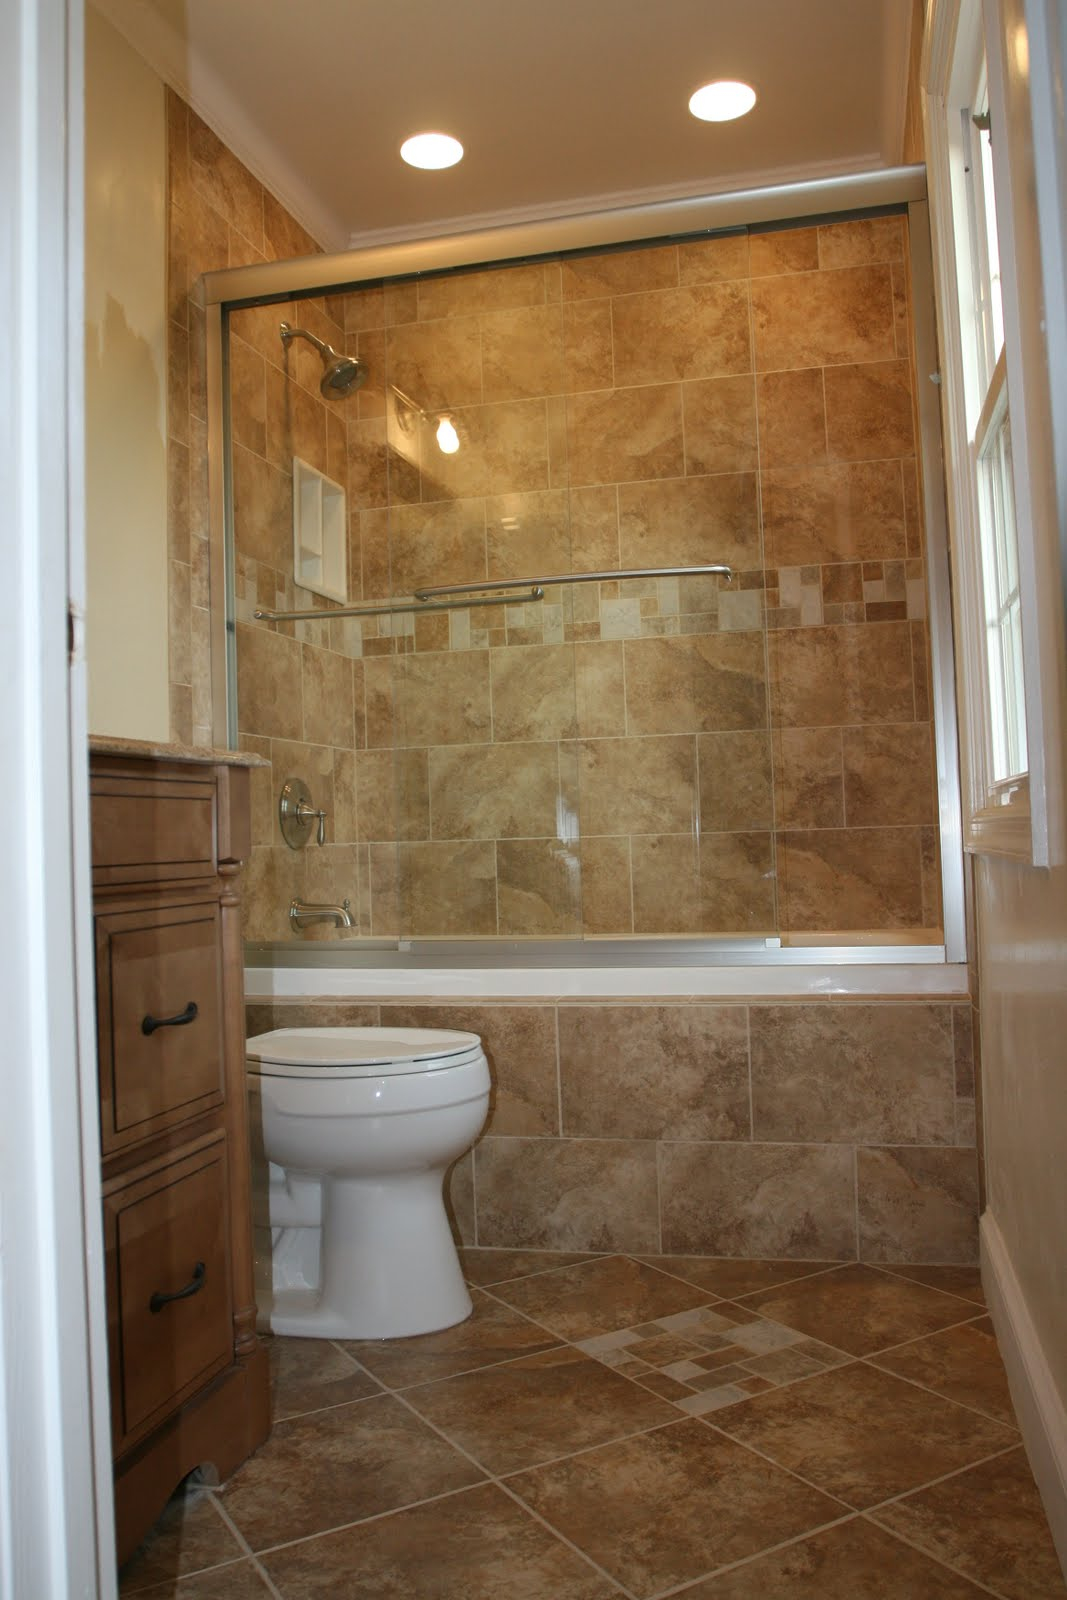 Bathroom remodeling design ideas tile shower niches november 2009 for Bathroom tub and shower tile ideas